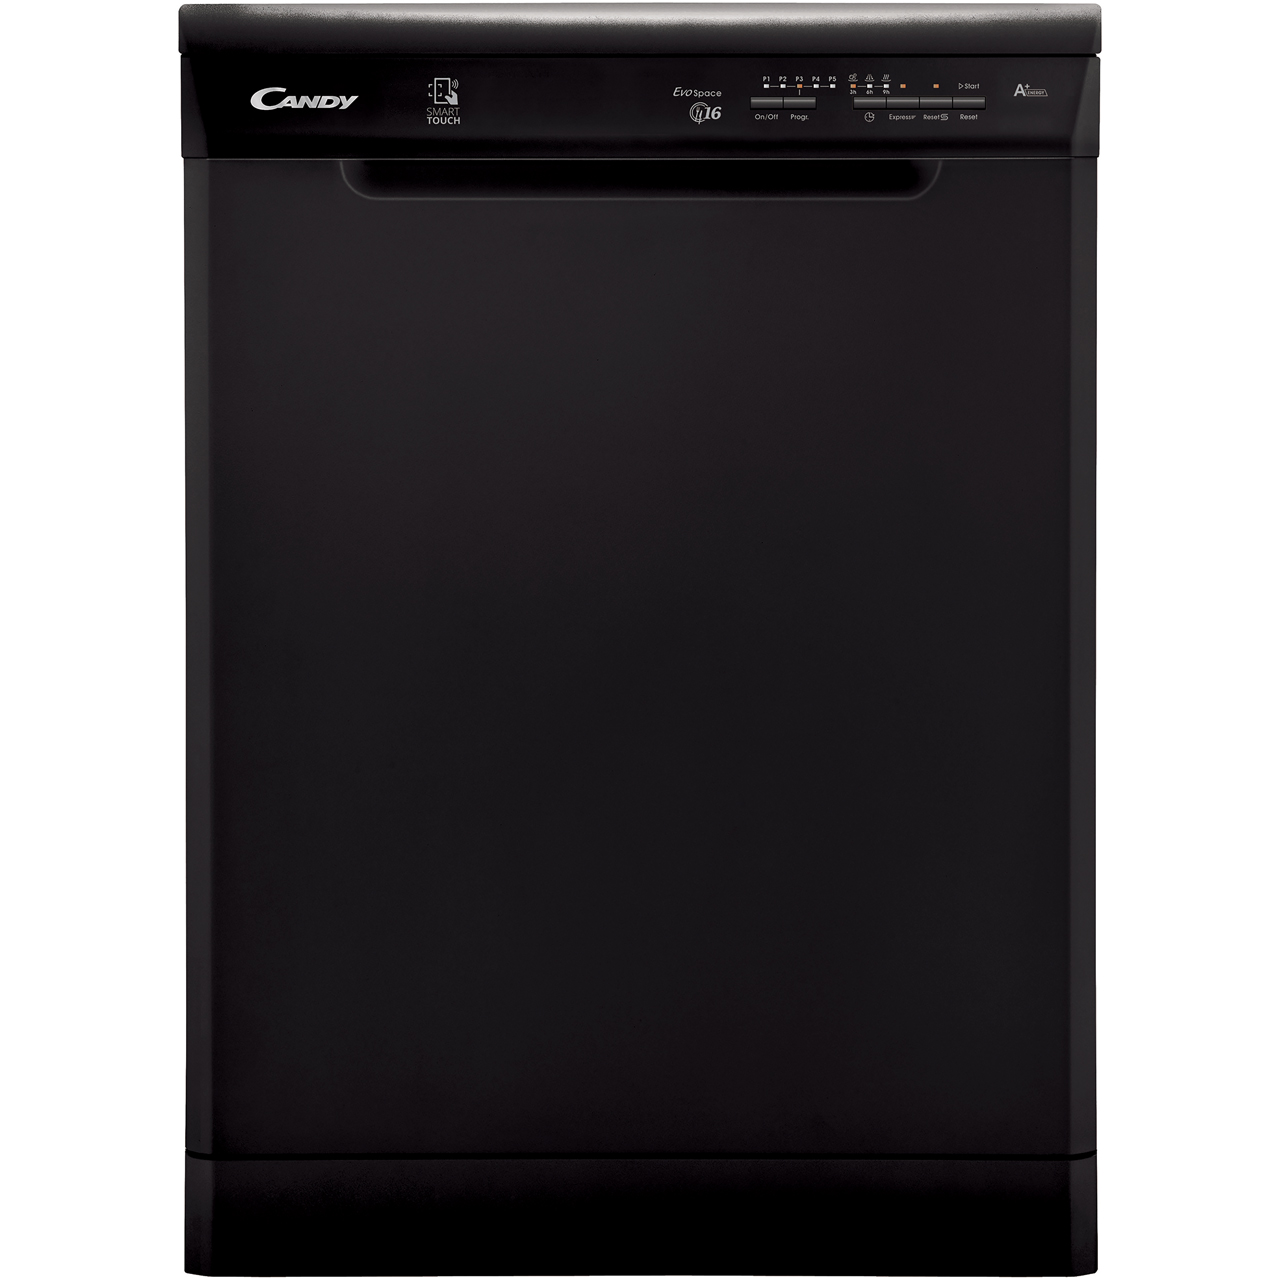 candy cdp1ls67b full size dishwasher appliance spotter. Black Bedroom Furniture Sets. Home Design Ideas